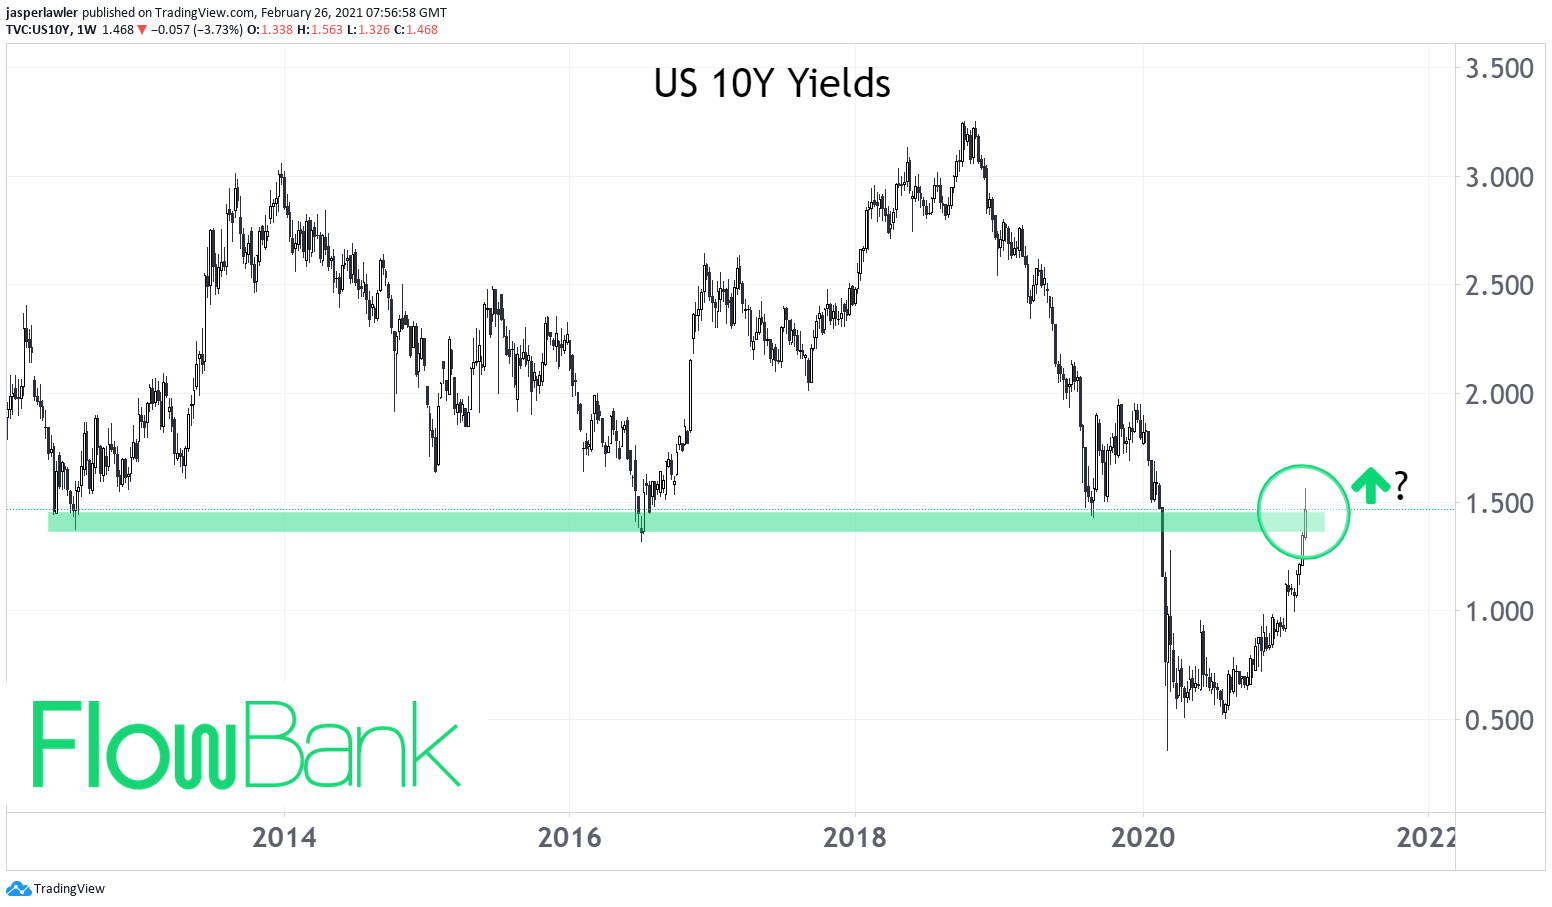 Where US yields 'flash spiked' is a big technical level